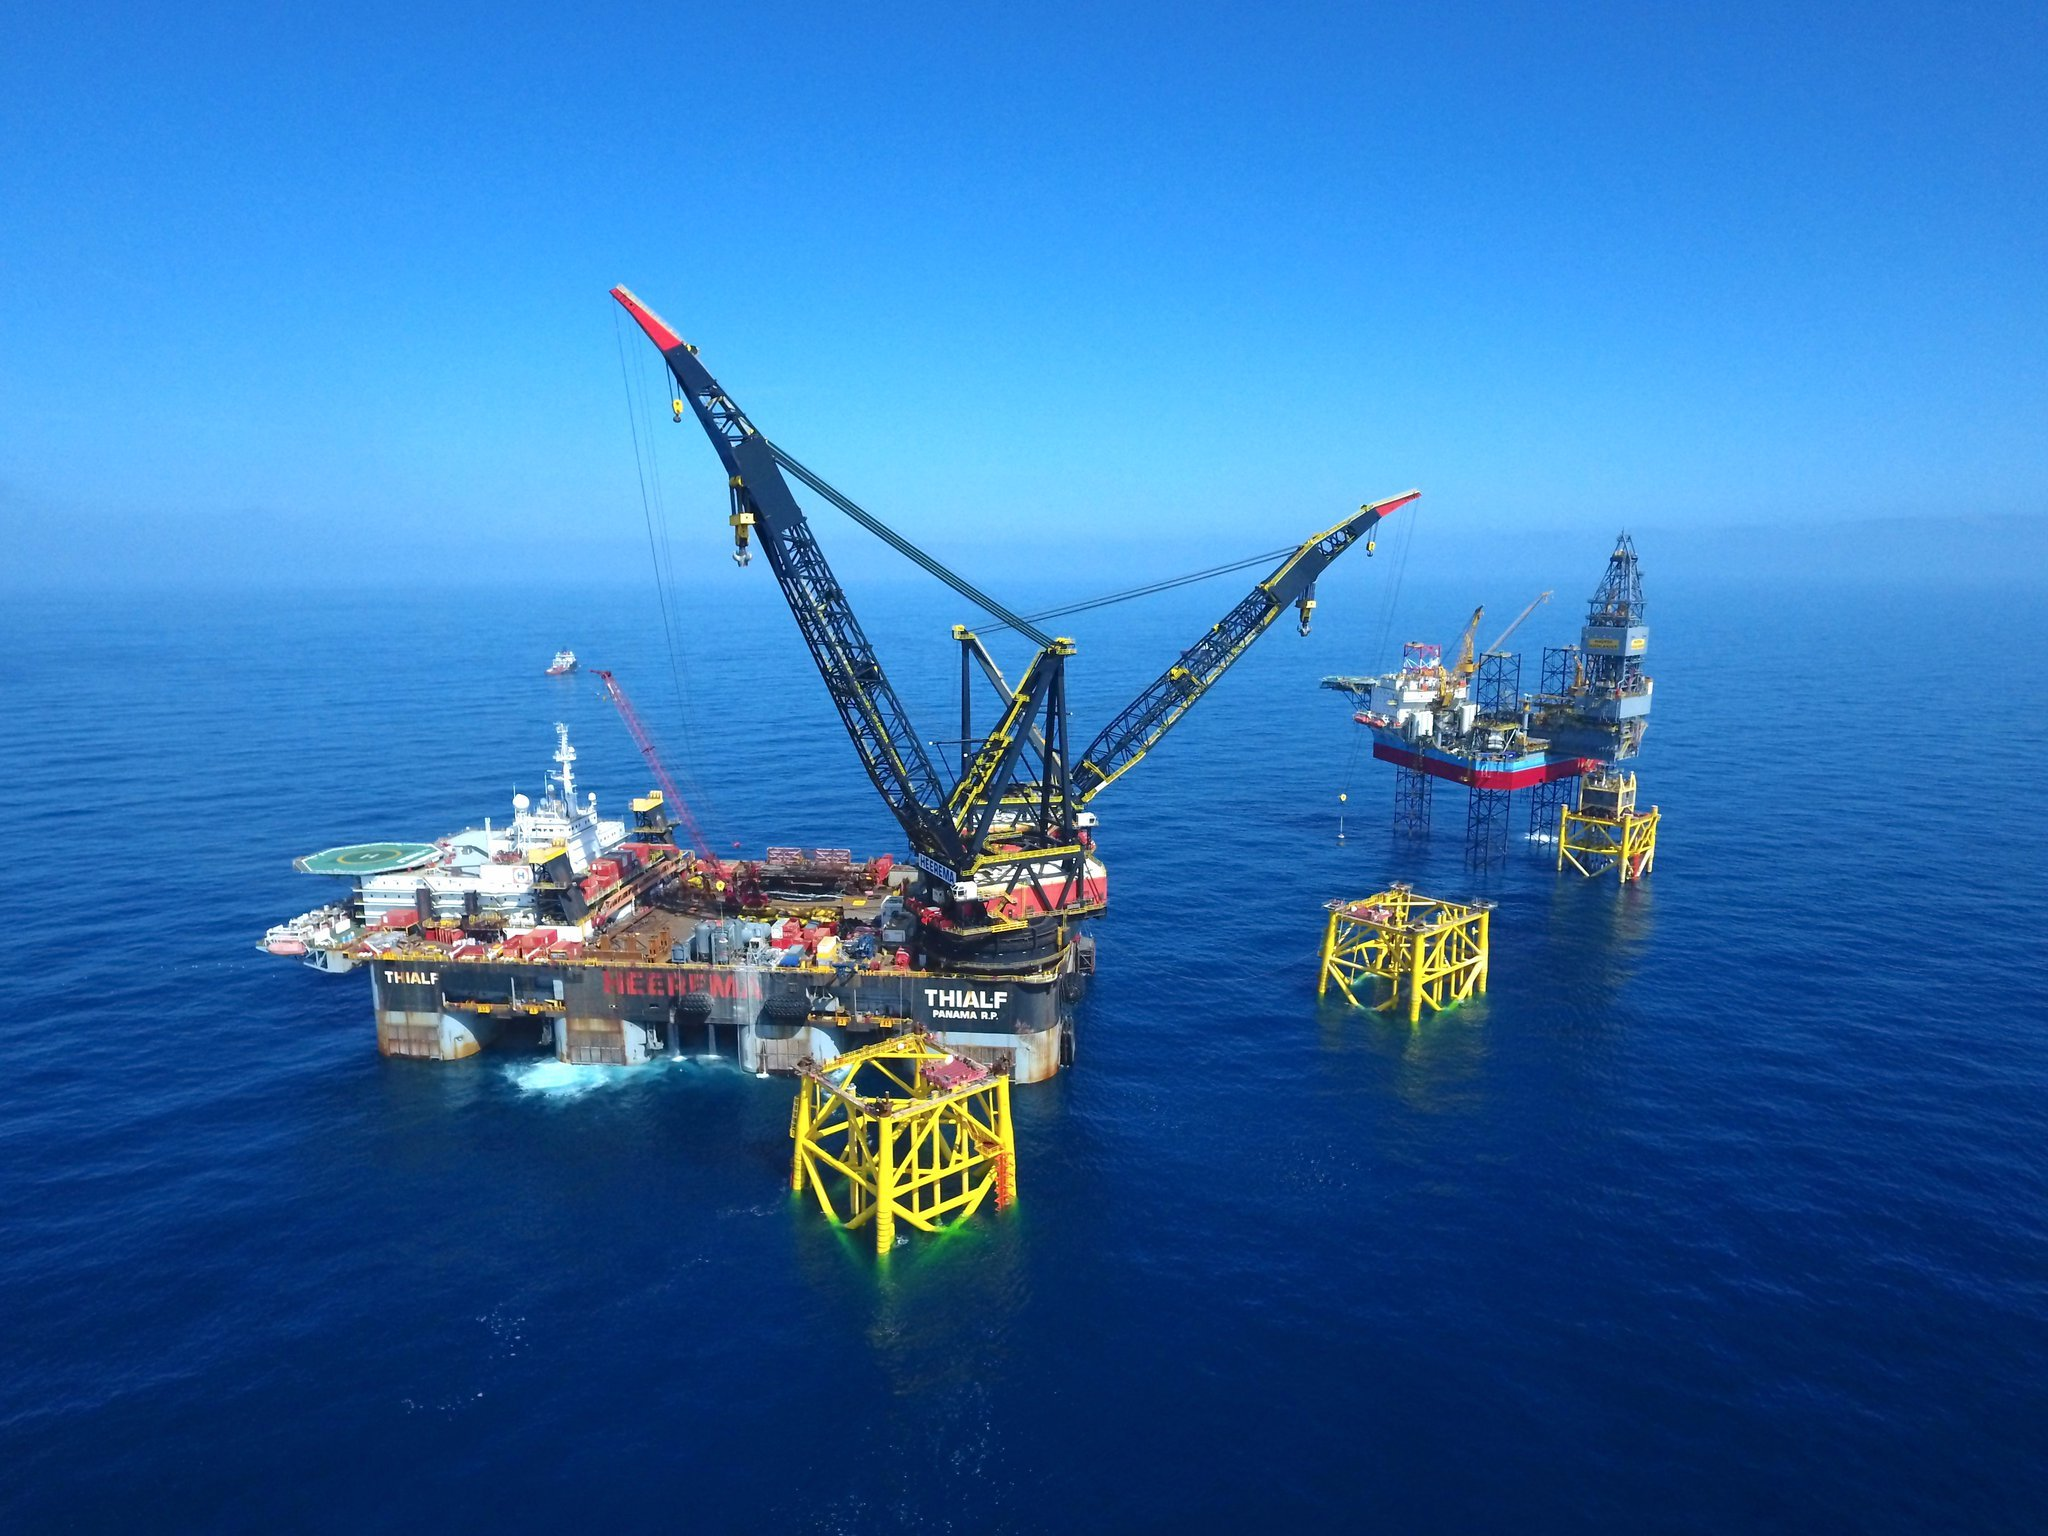 Platform jackets being installed on the North Sea Culzean field.